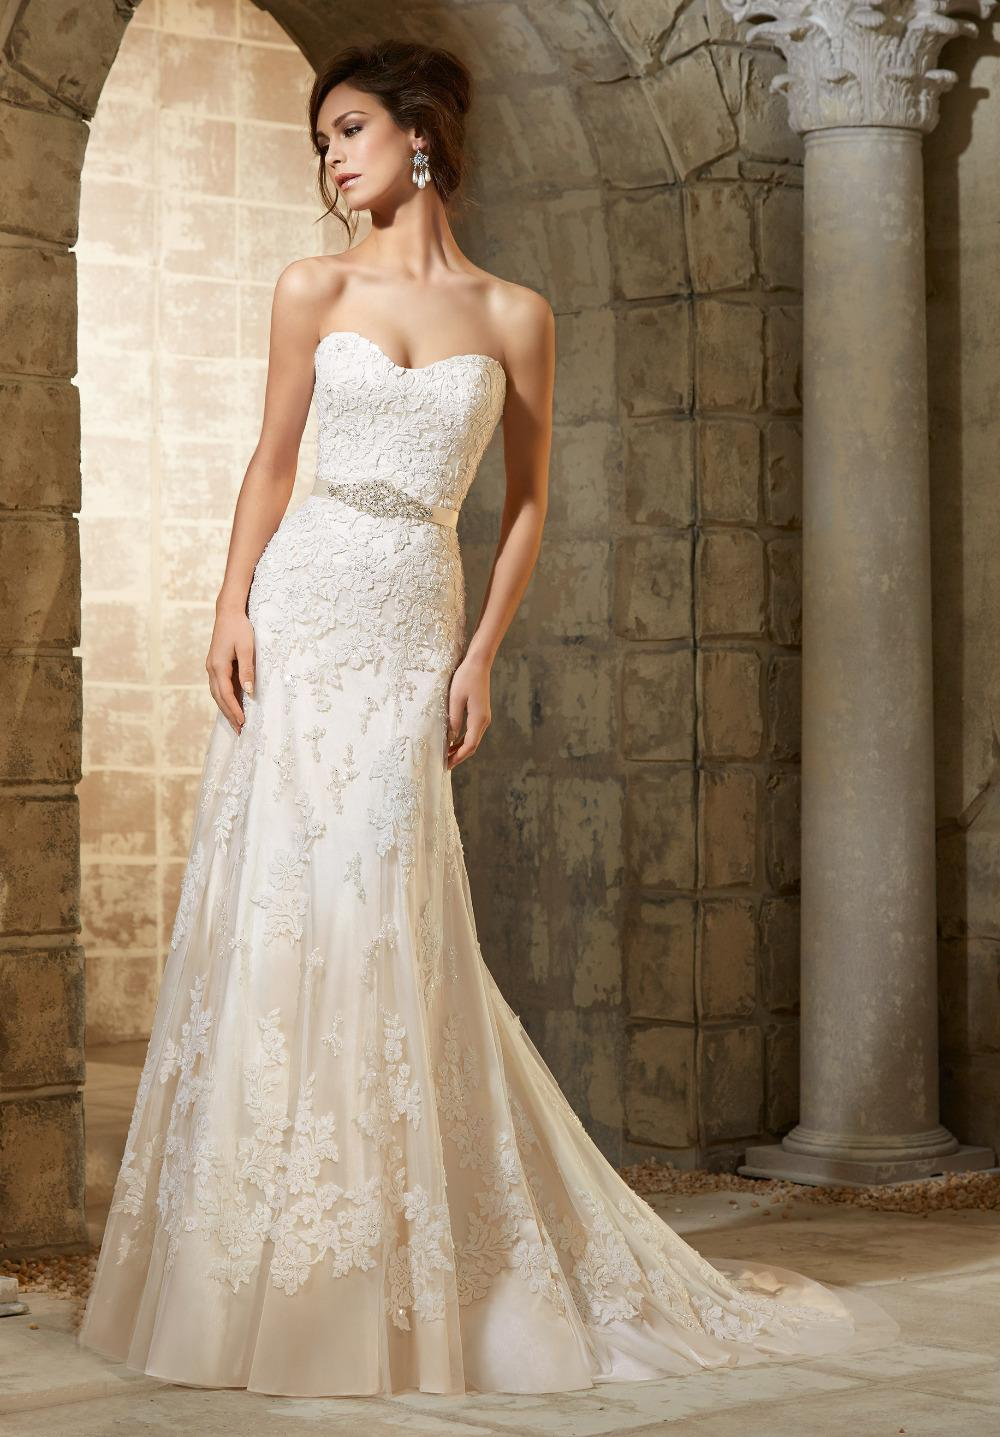 Elegant sheath lace long wedding dresses white ivory 2015 for Ivory wedding dress sash